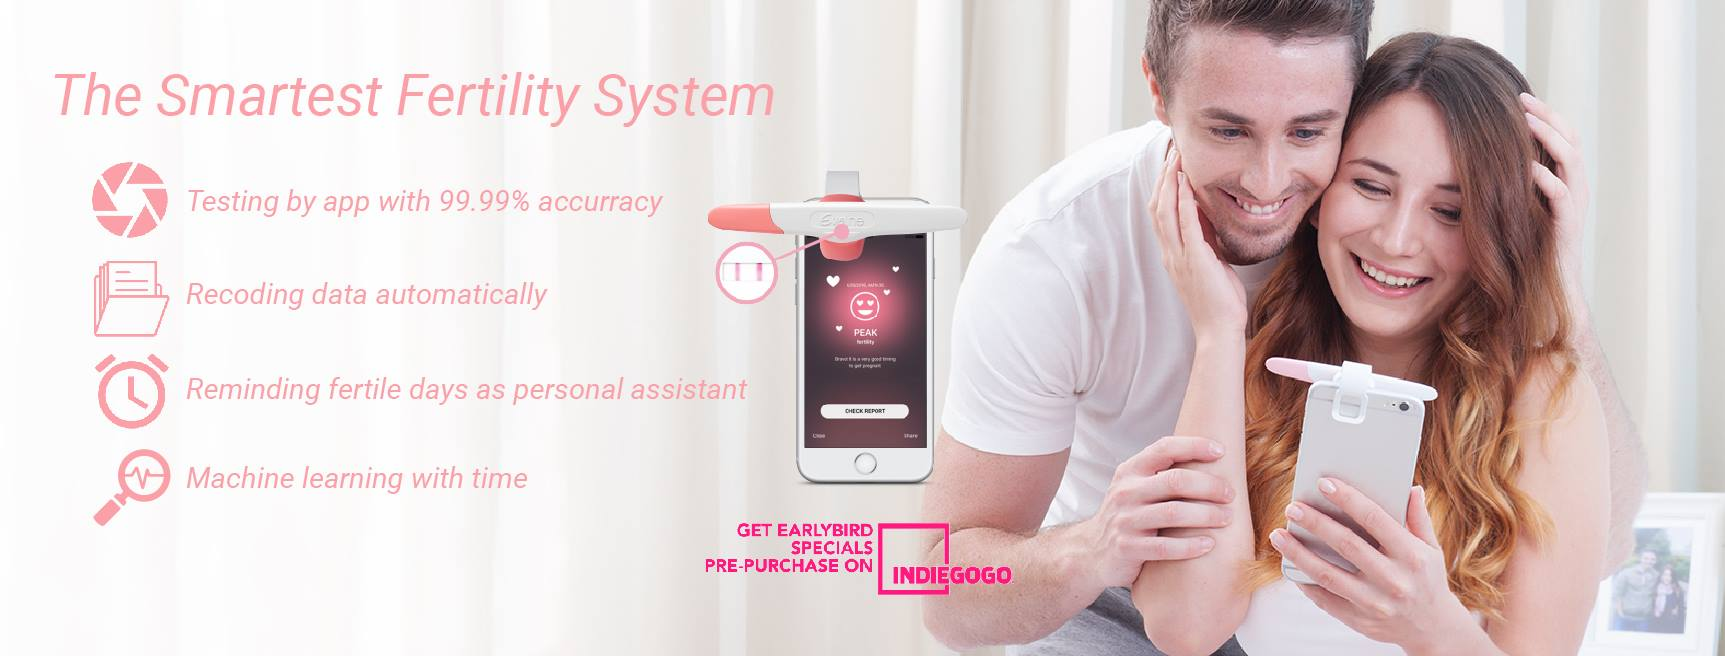 Eveline Smart Fertility System